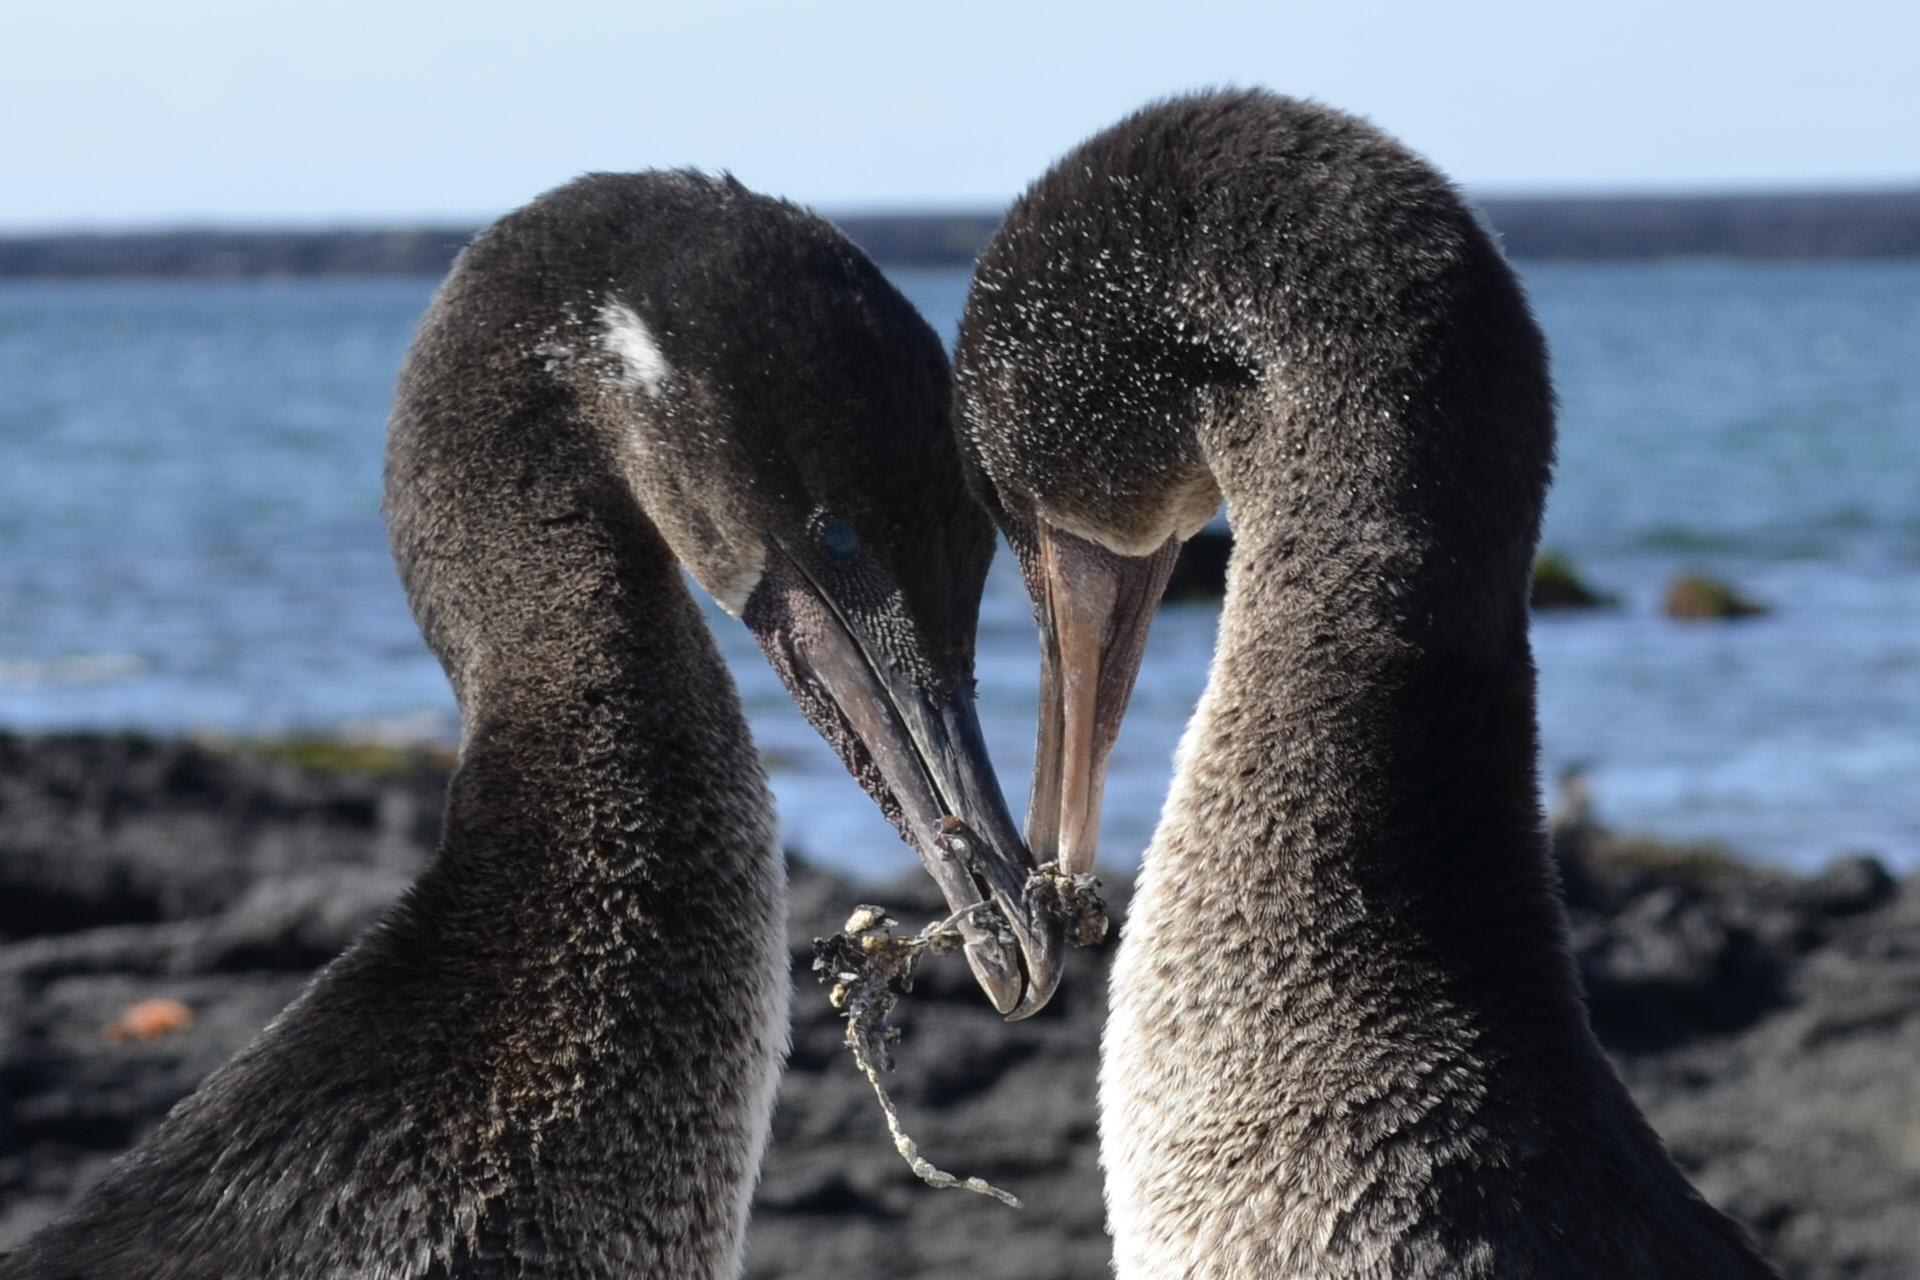 Coral I & II's 8-Day Cruise 'A+B' Itinerary Day Six - Flightless Cormorant Cuddle